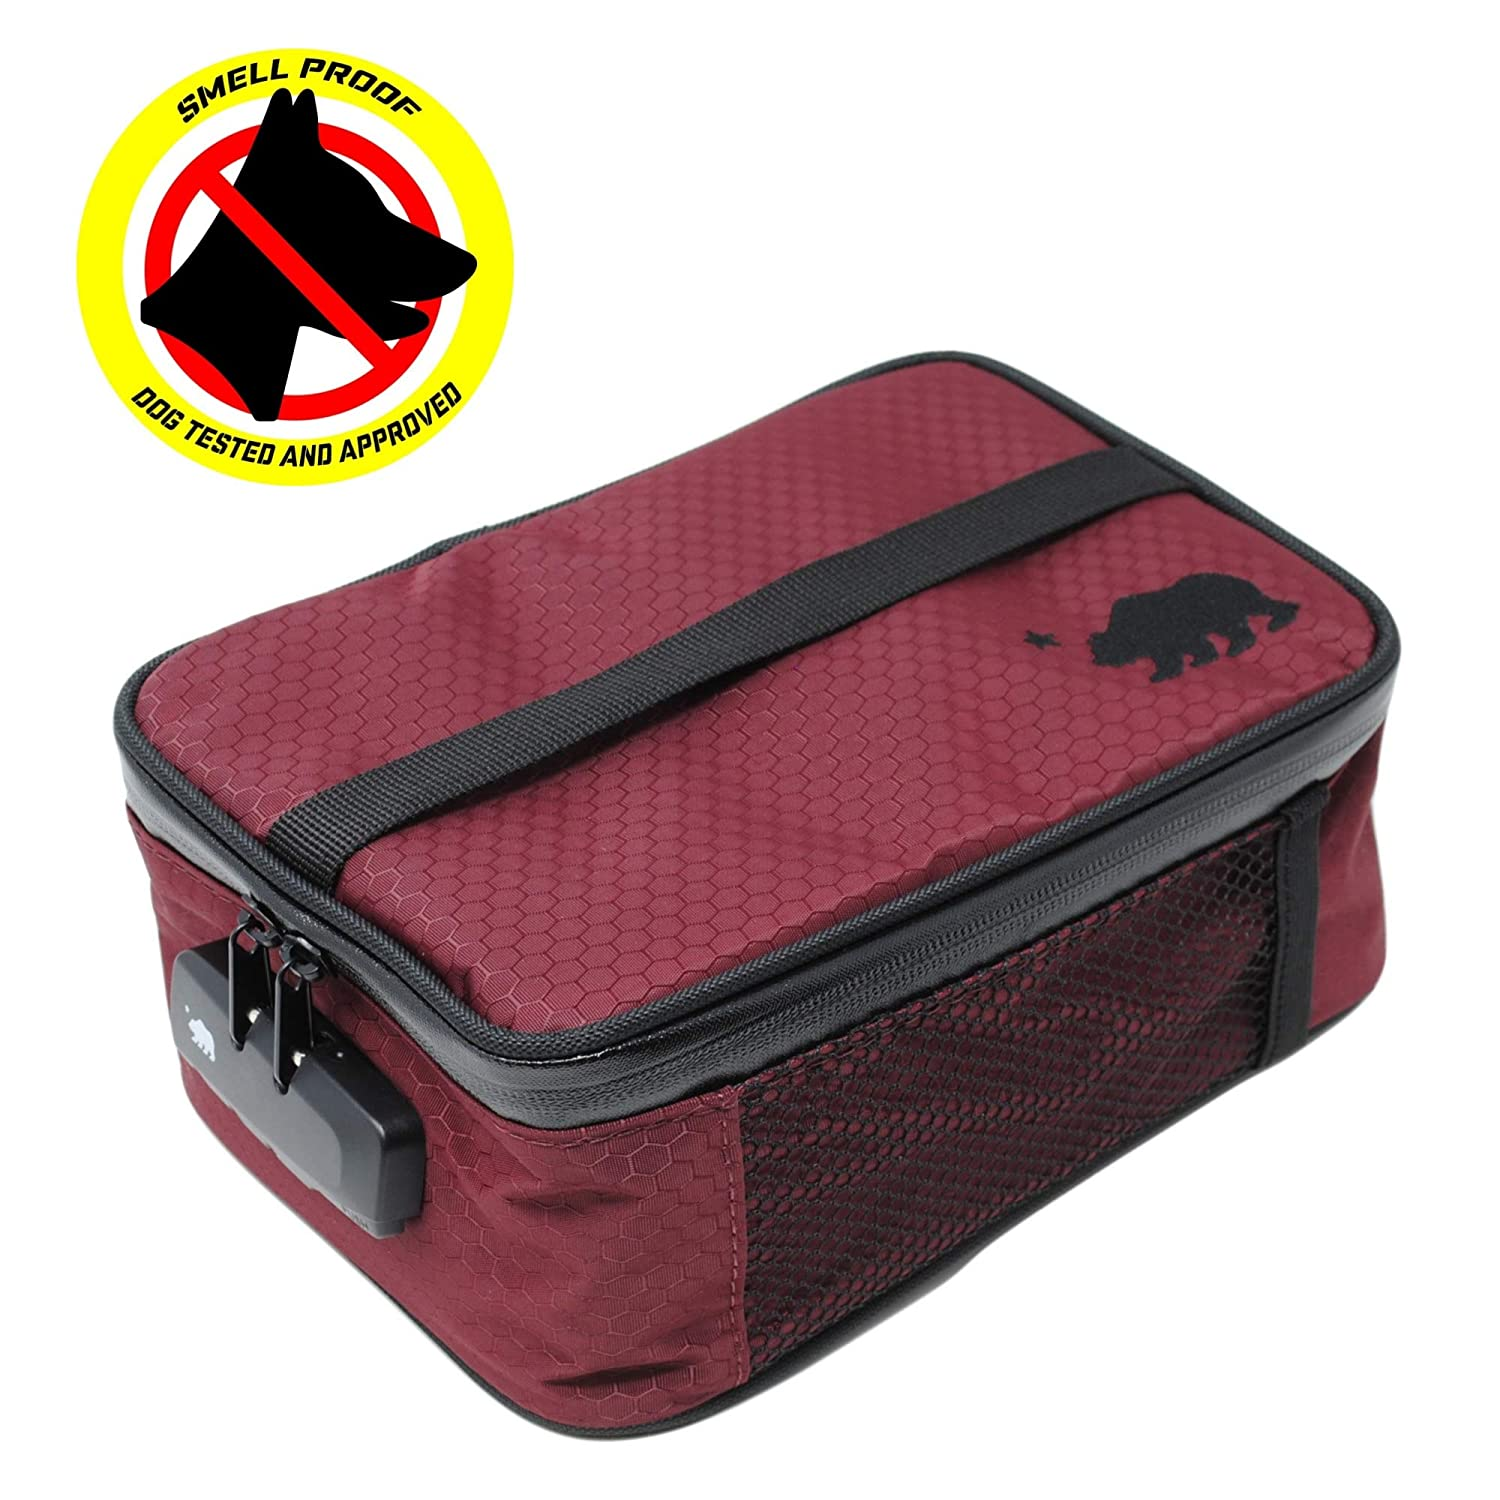 Cali Crusher 100% Smell Proof Soft Case w/Combo Lock (9x7x3.5) (Gray)